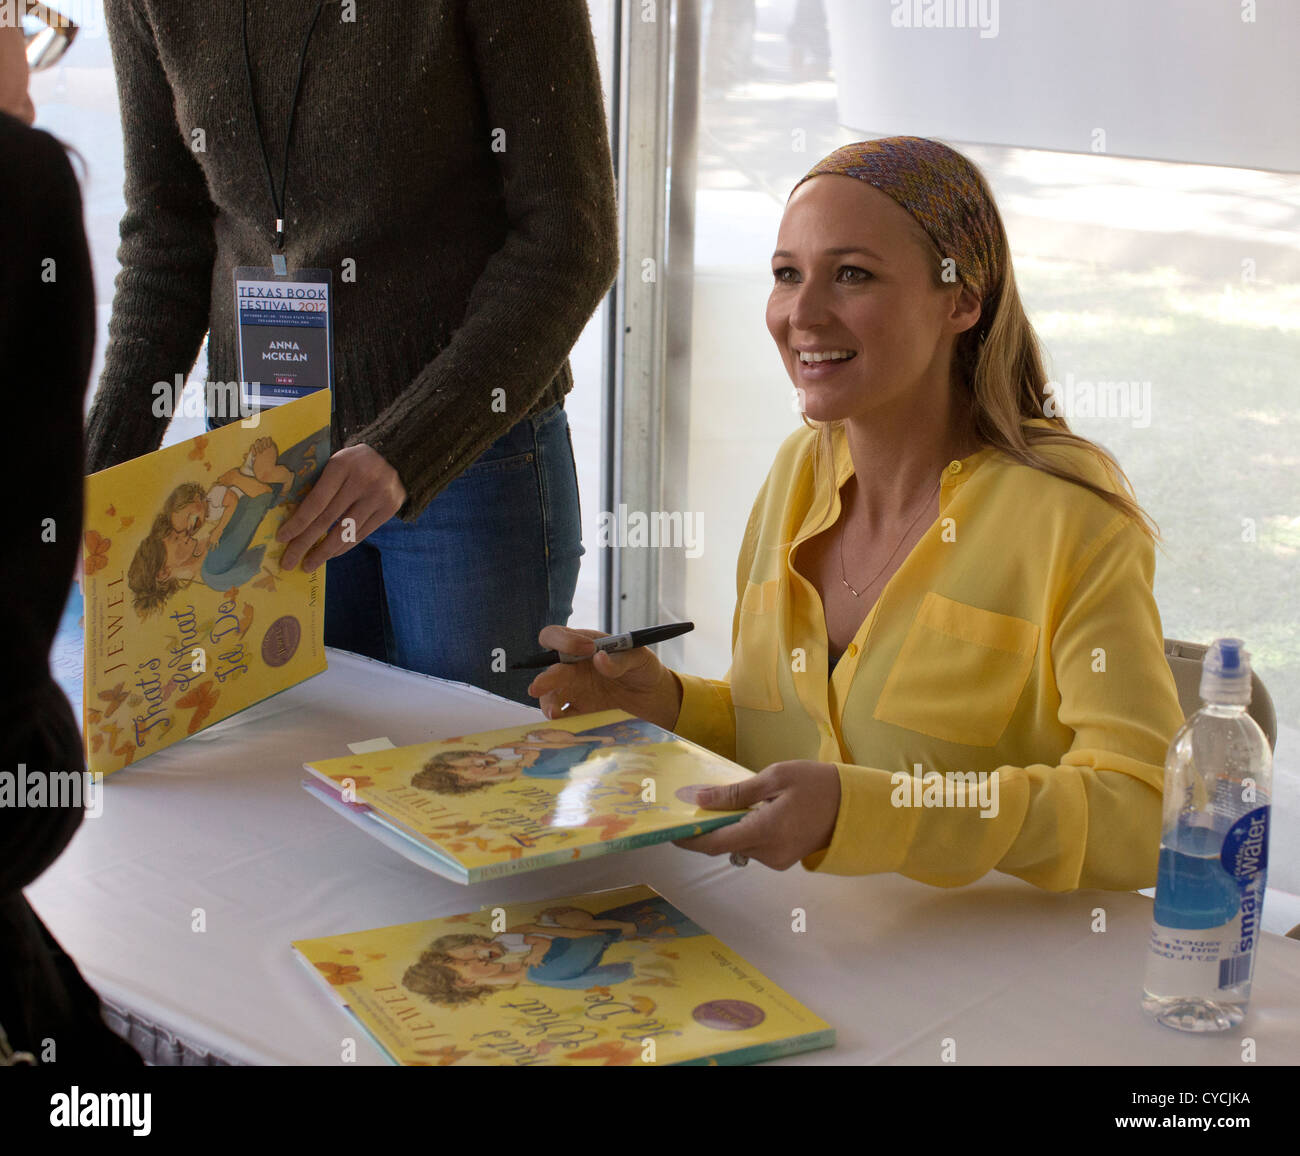 Singer and author Jewel signs copies of her children's book at the Texas Book Festival in Austin. - Stock Image